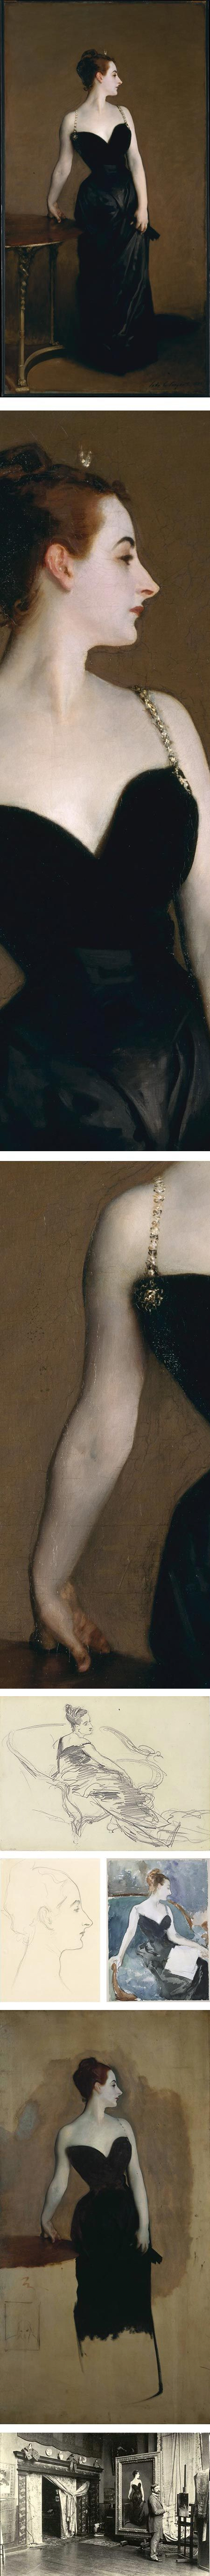 Sargent's Madame X (portrait of Virginie Amélie Gautreau- see link for the story behind the painting.)